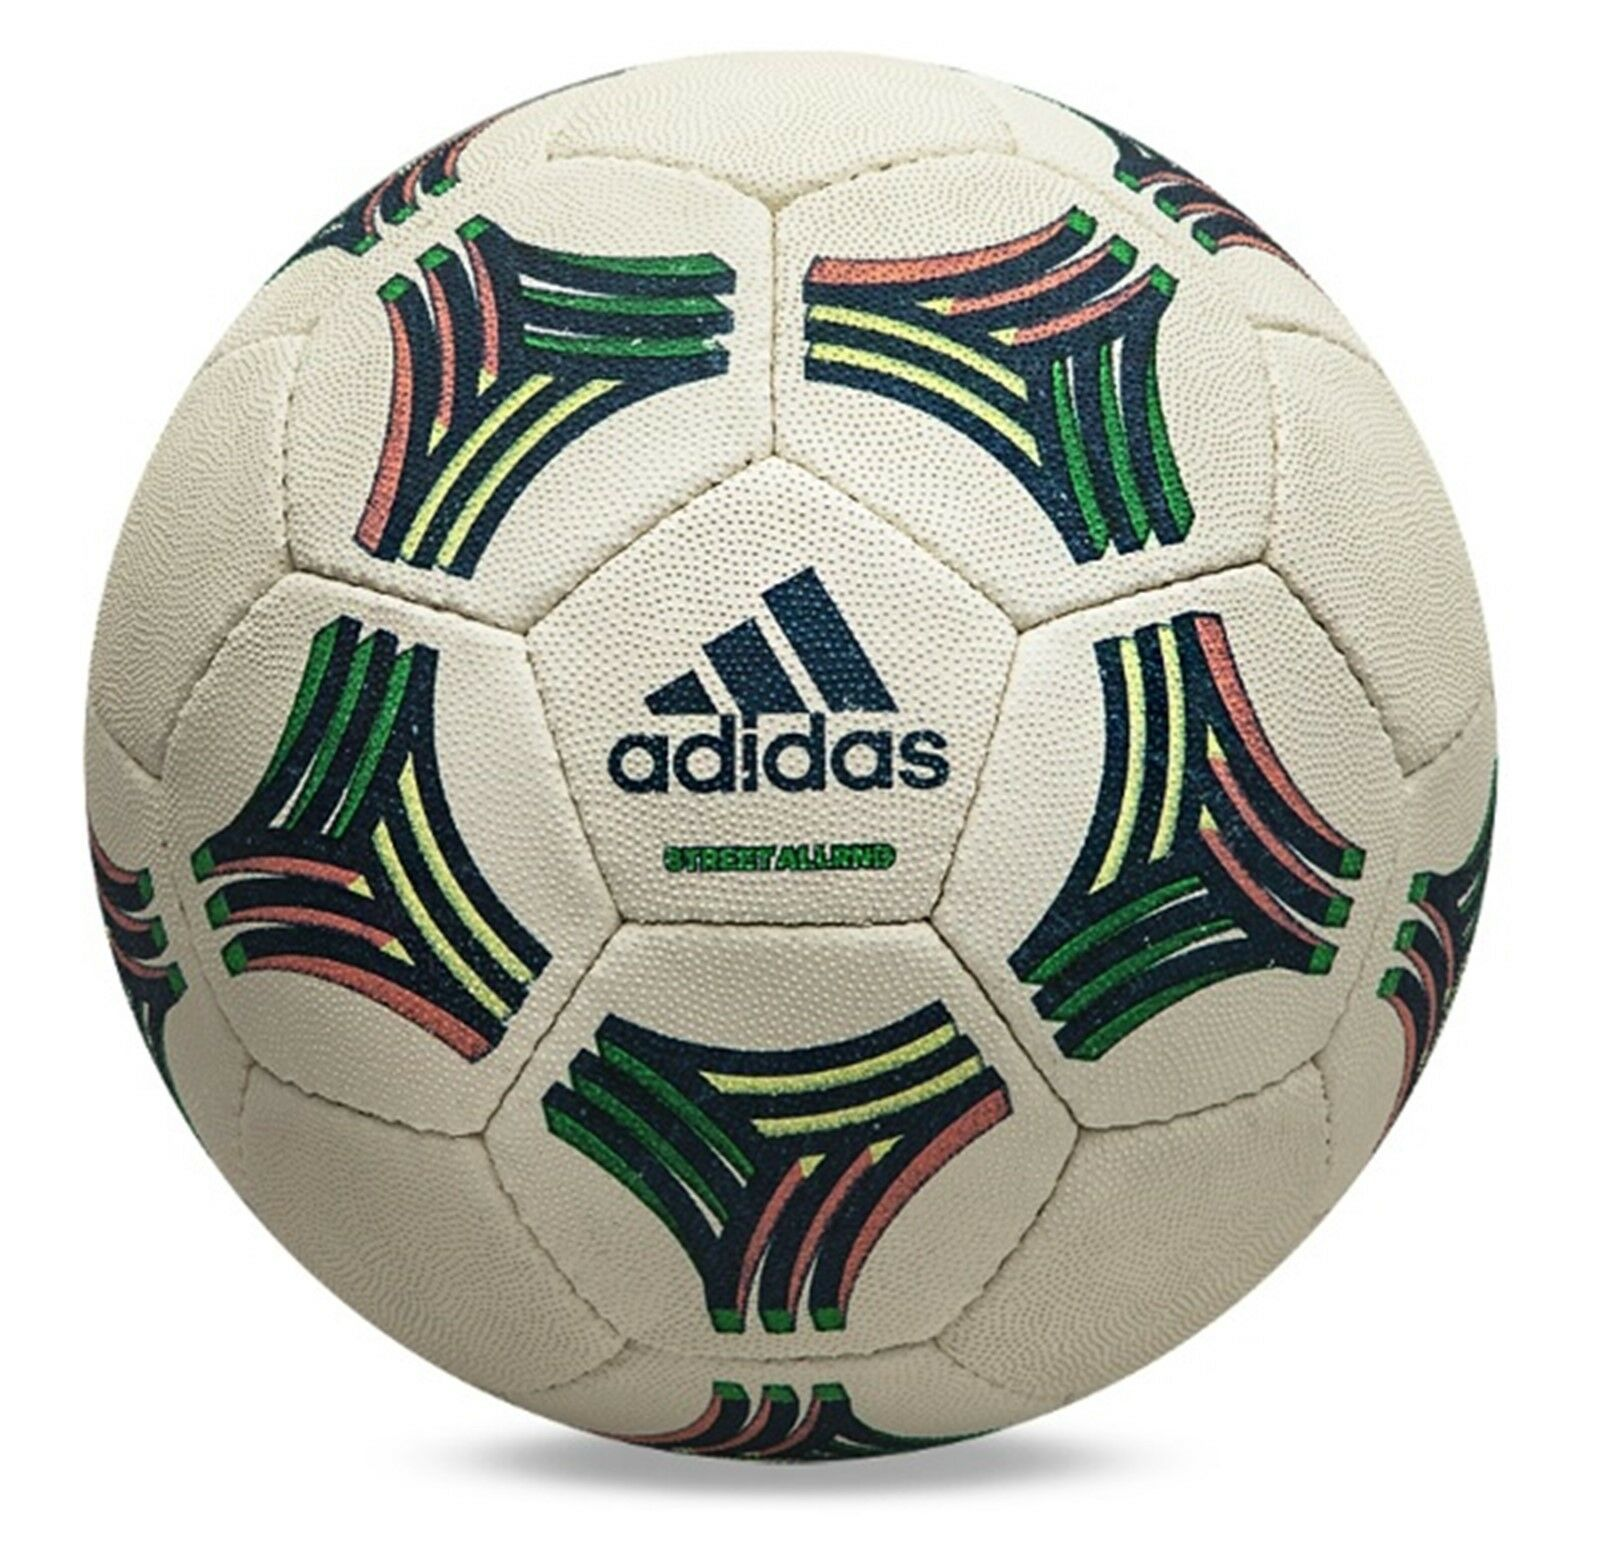 Adidas Tango Street ALL Round Soccer Ball White Size 5 Football Balls DN8726